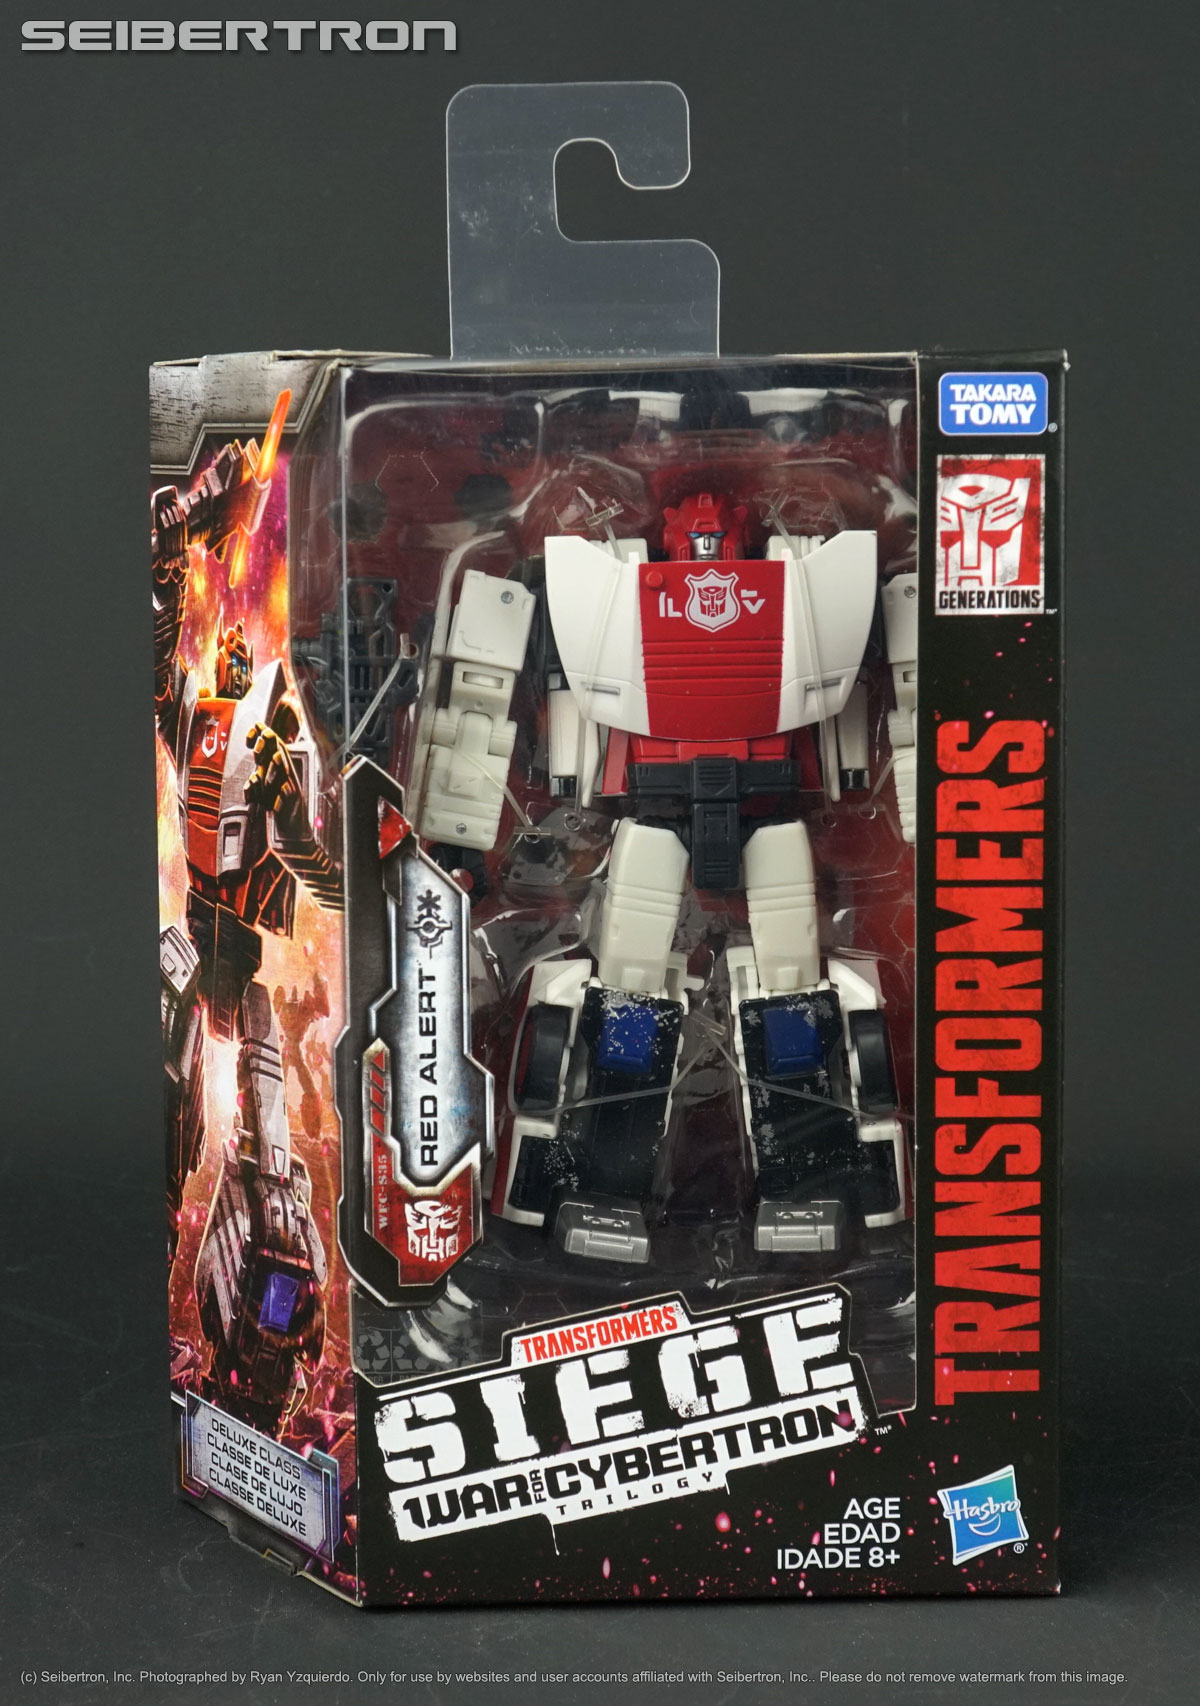 Transformers d/'assedio GUERRA per Cybertron voyager class action figure Hasbro Giocattolo